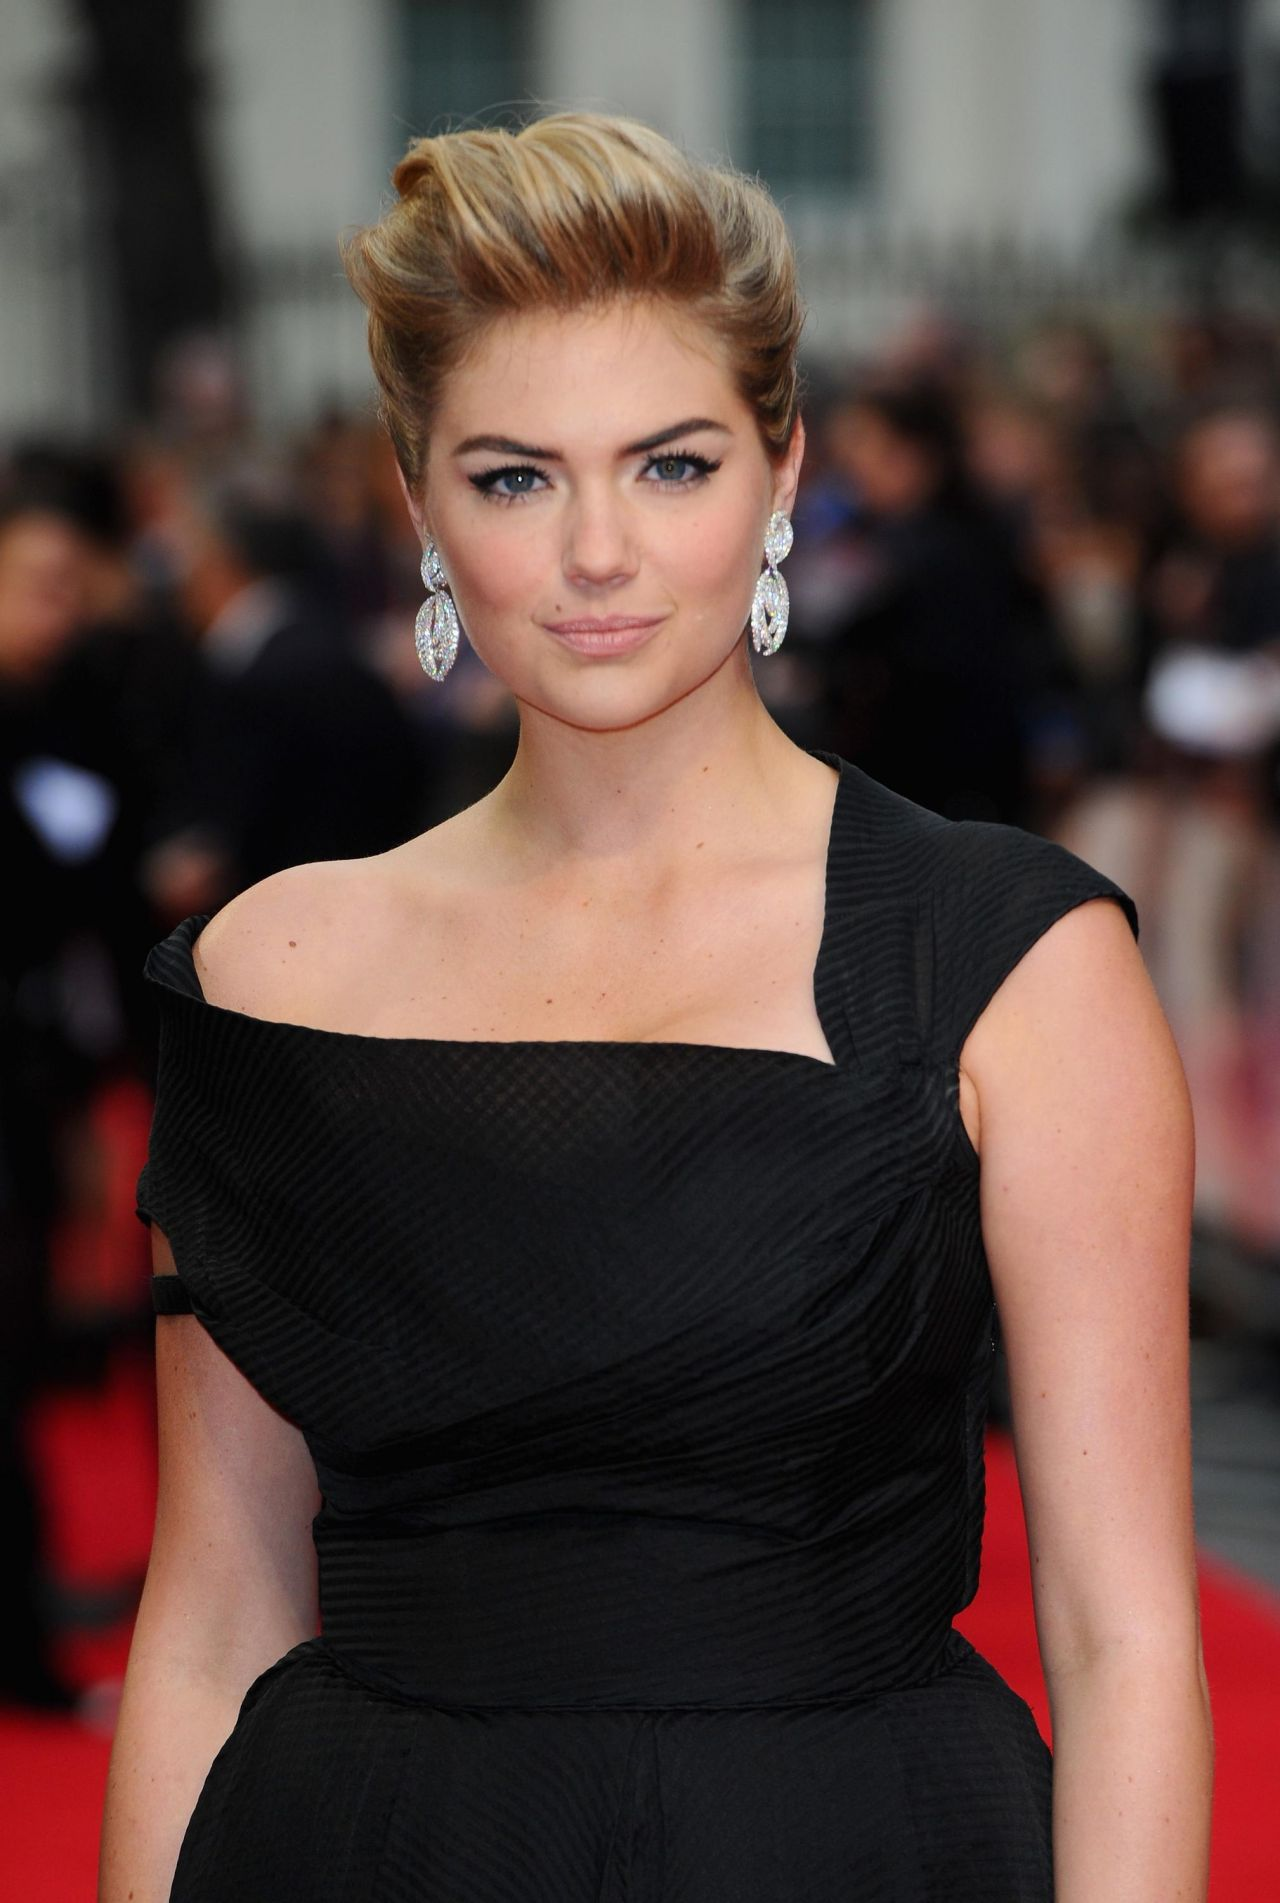 Kate Upton In Williamvintage Dress The Other Woman